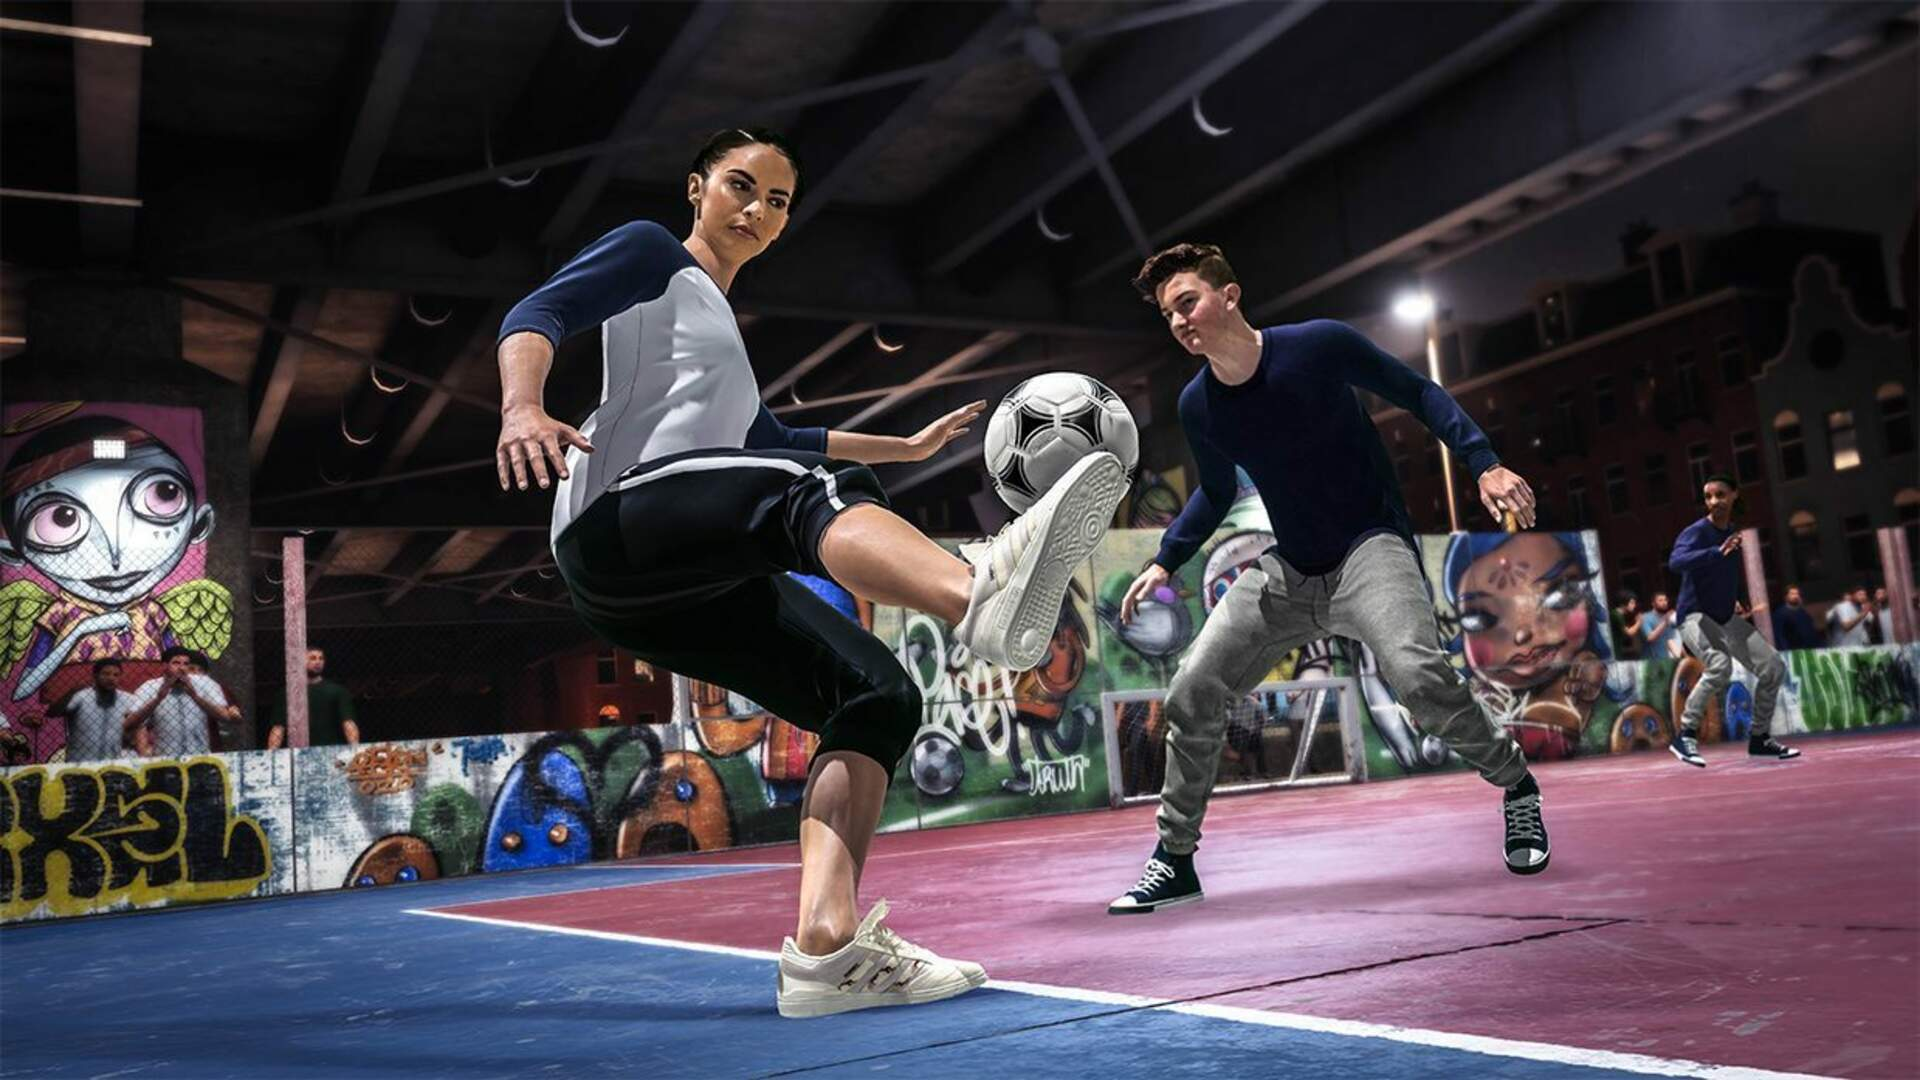 Electronic Arts Adds Mystery Sports Game to Usual NHL, FIFA, and Madden Slate